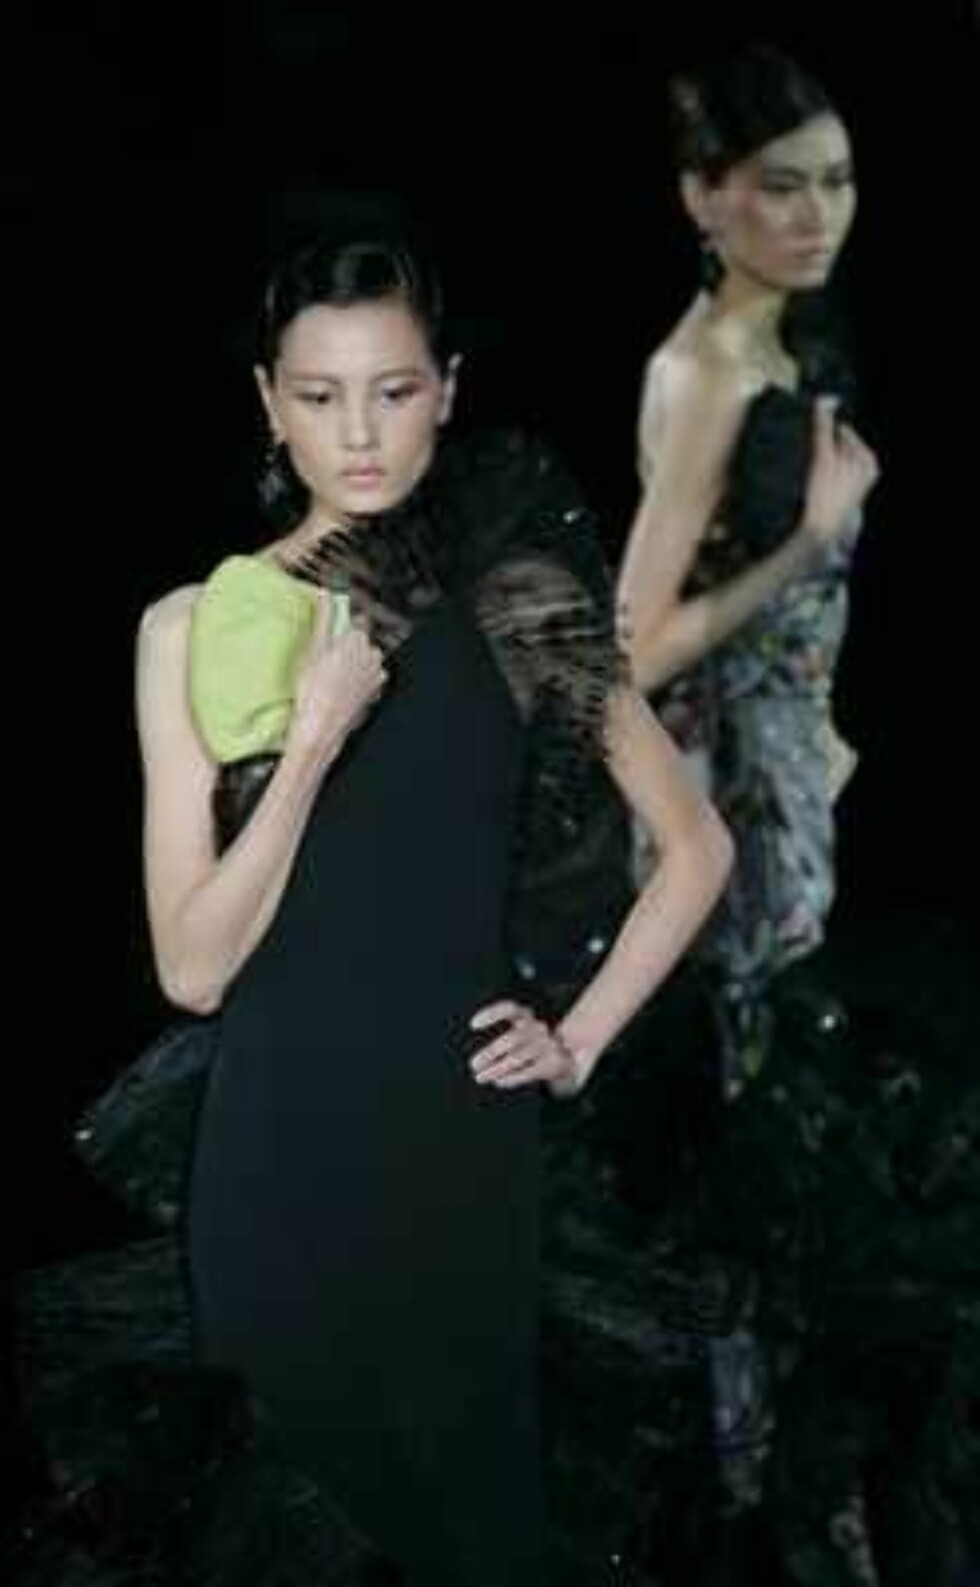 Models present creations during the Giorgio Armani Prive Spring-Summer 2006 Haute Couture fashion show in Hong Kong Thursday, March 30, 2006. Giorgio Armani is seeking to expand his fashion empire in China - a place he says has always inspired his designs Foto: AP